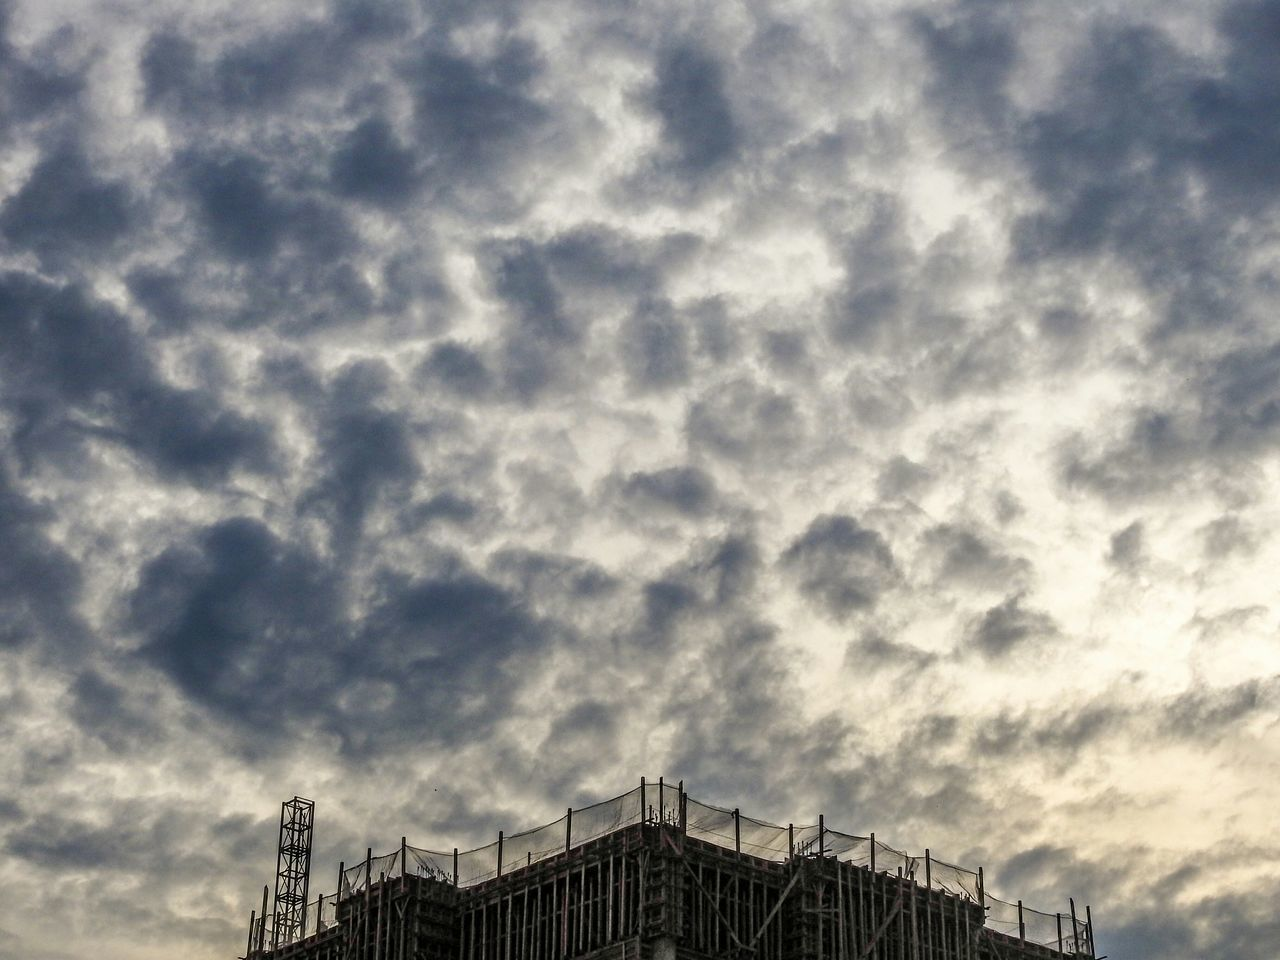 Low Angle View Of Incomplete Building Against Cloudy Sky